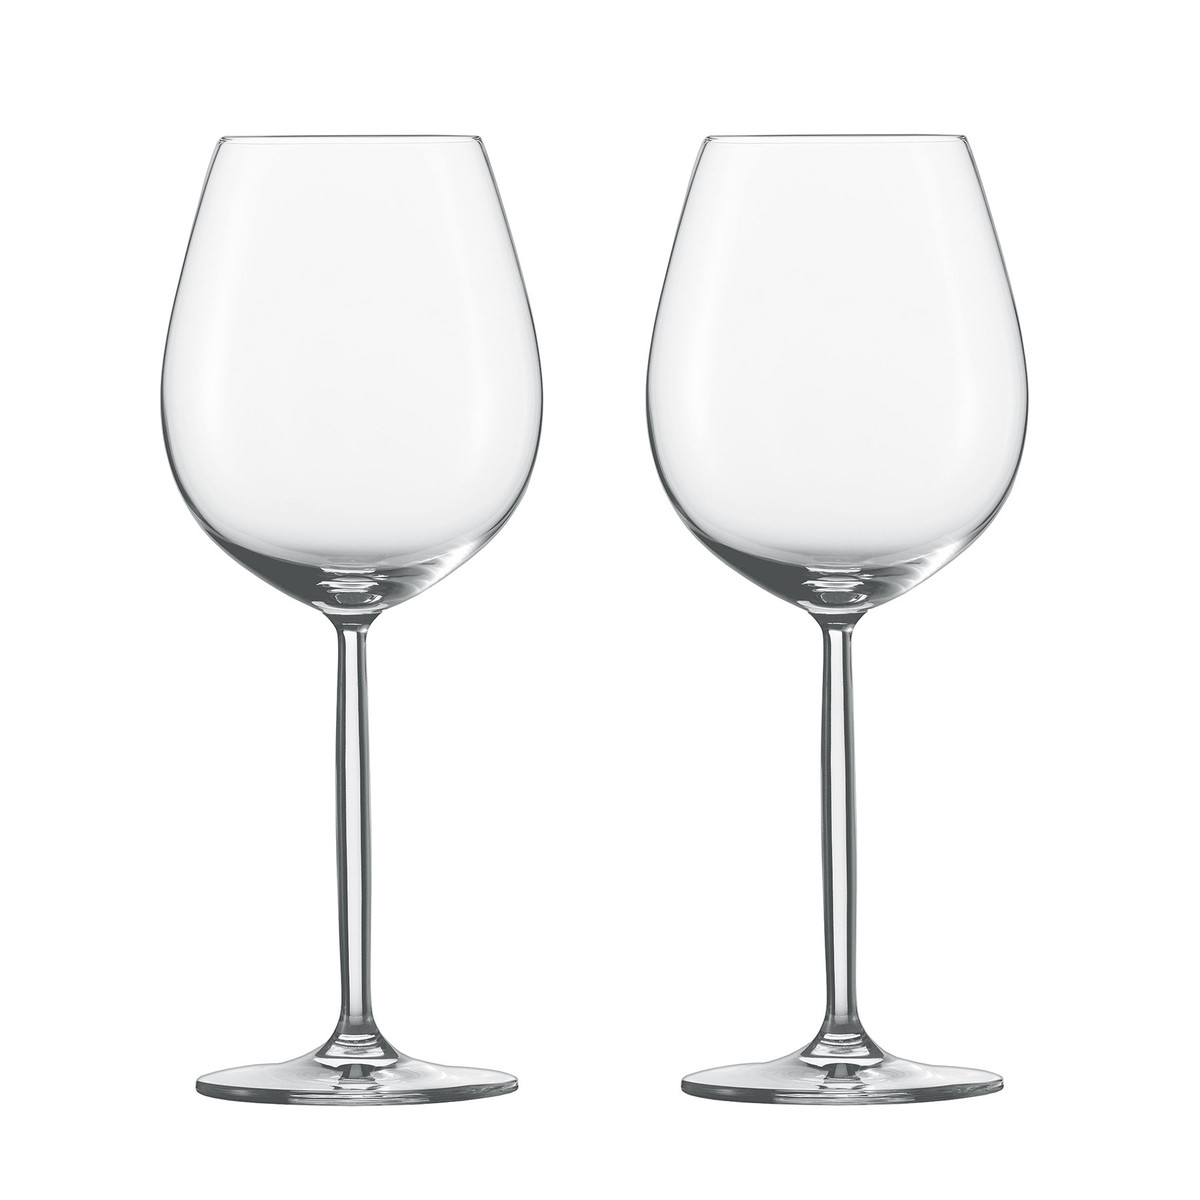 Schott Wine Glasses | Schott Zwiesel Wine Glasses | Titanium Wine Glasses Unbreakable